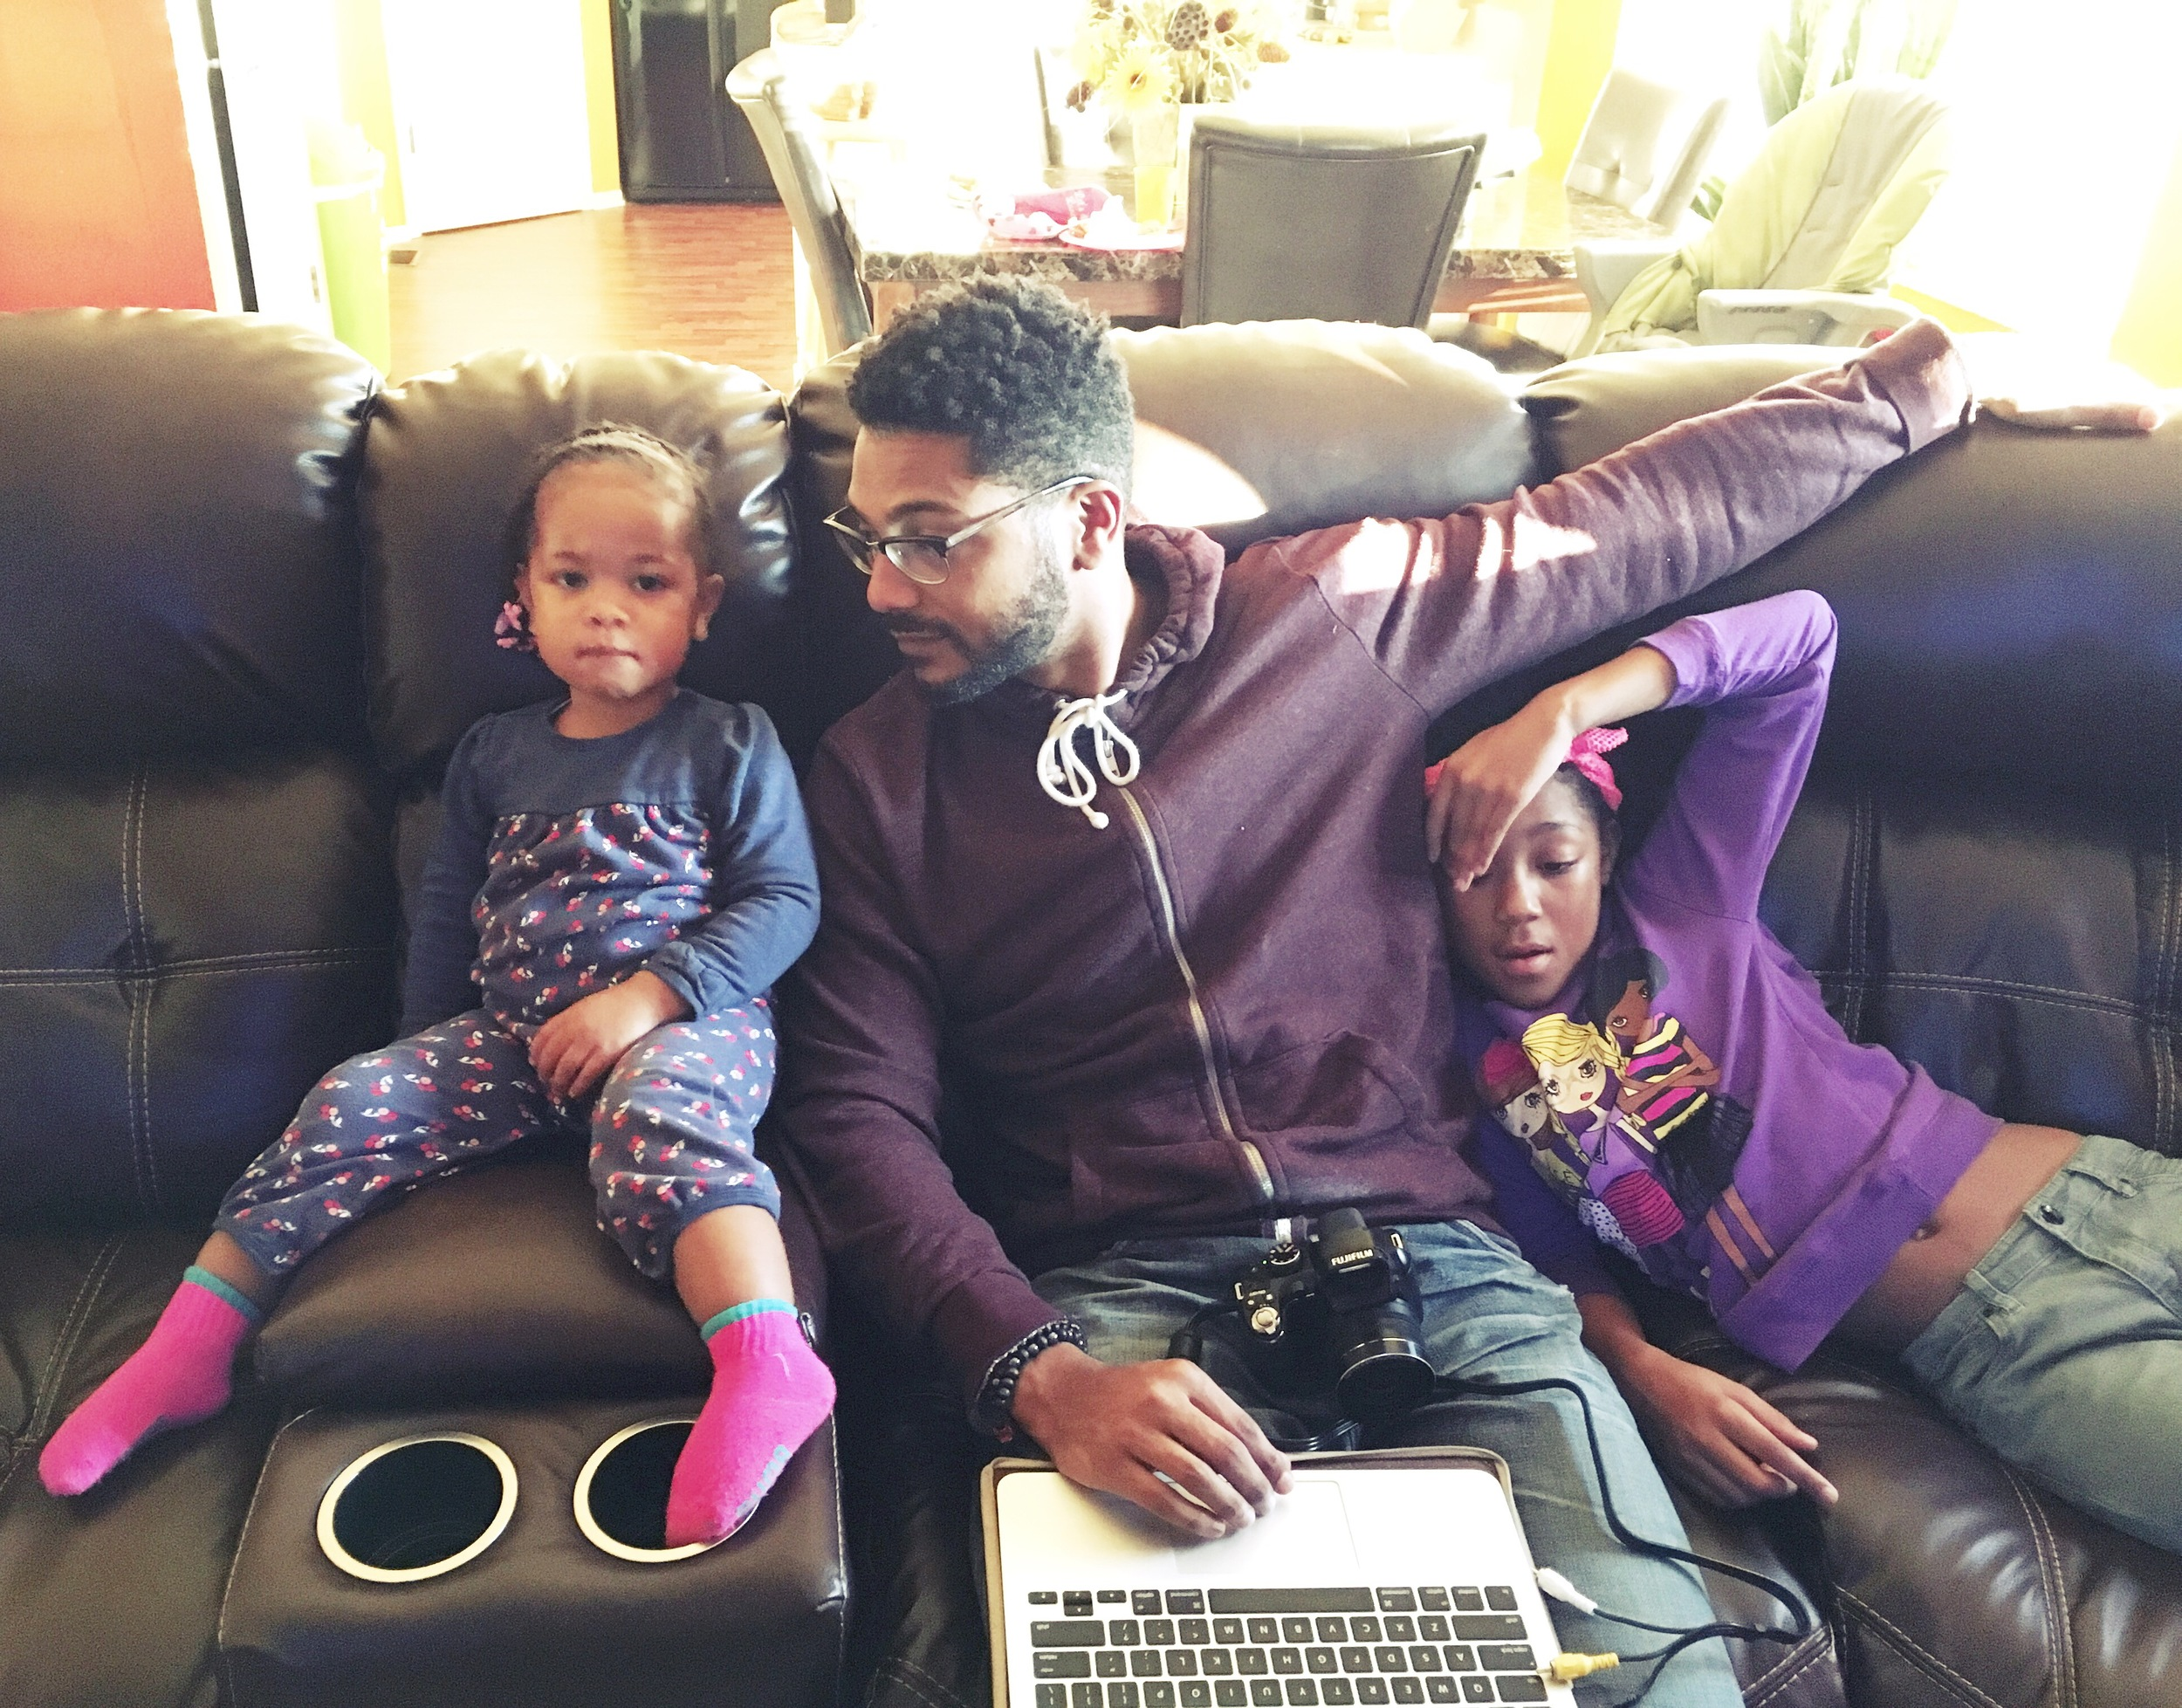 Daddy writing a paper but keeping his girls close.